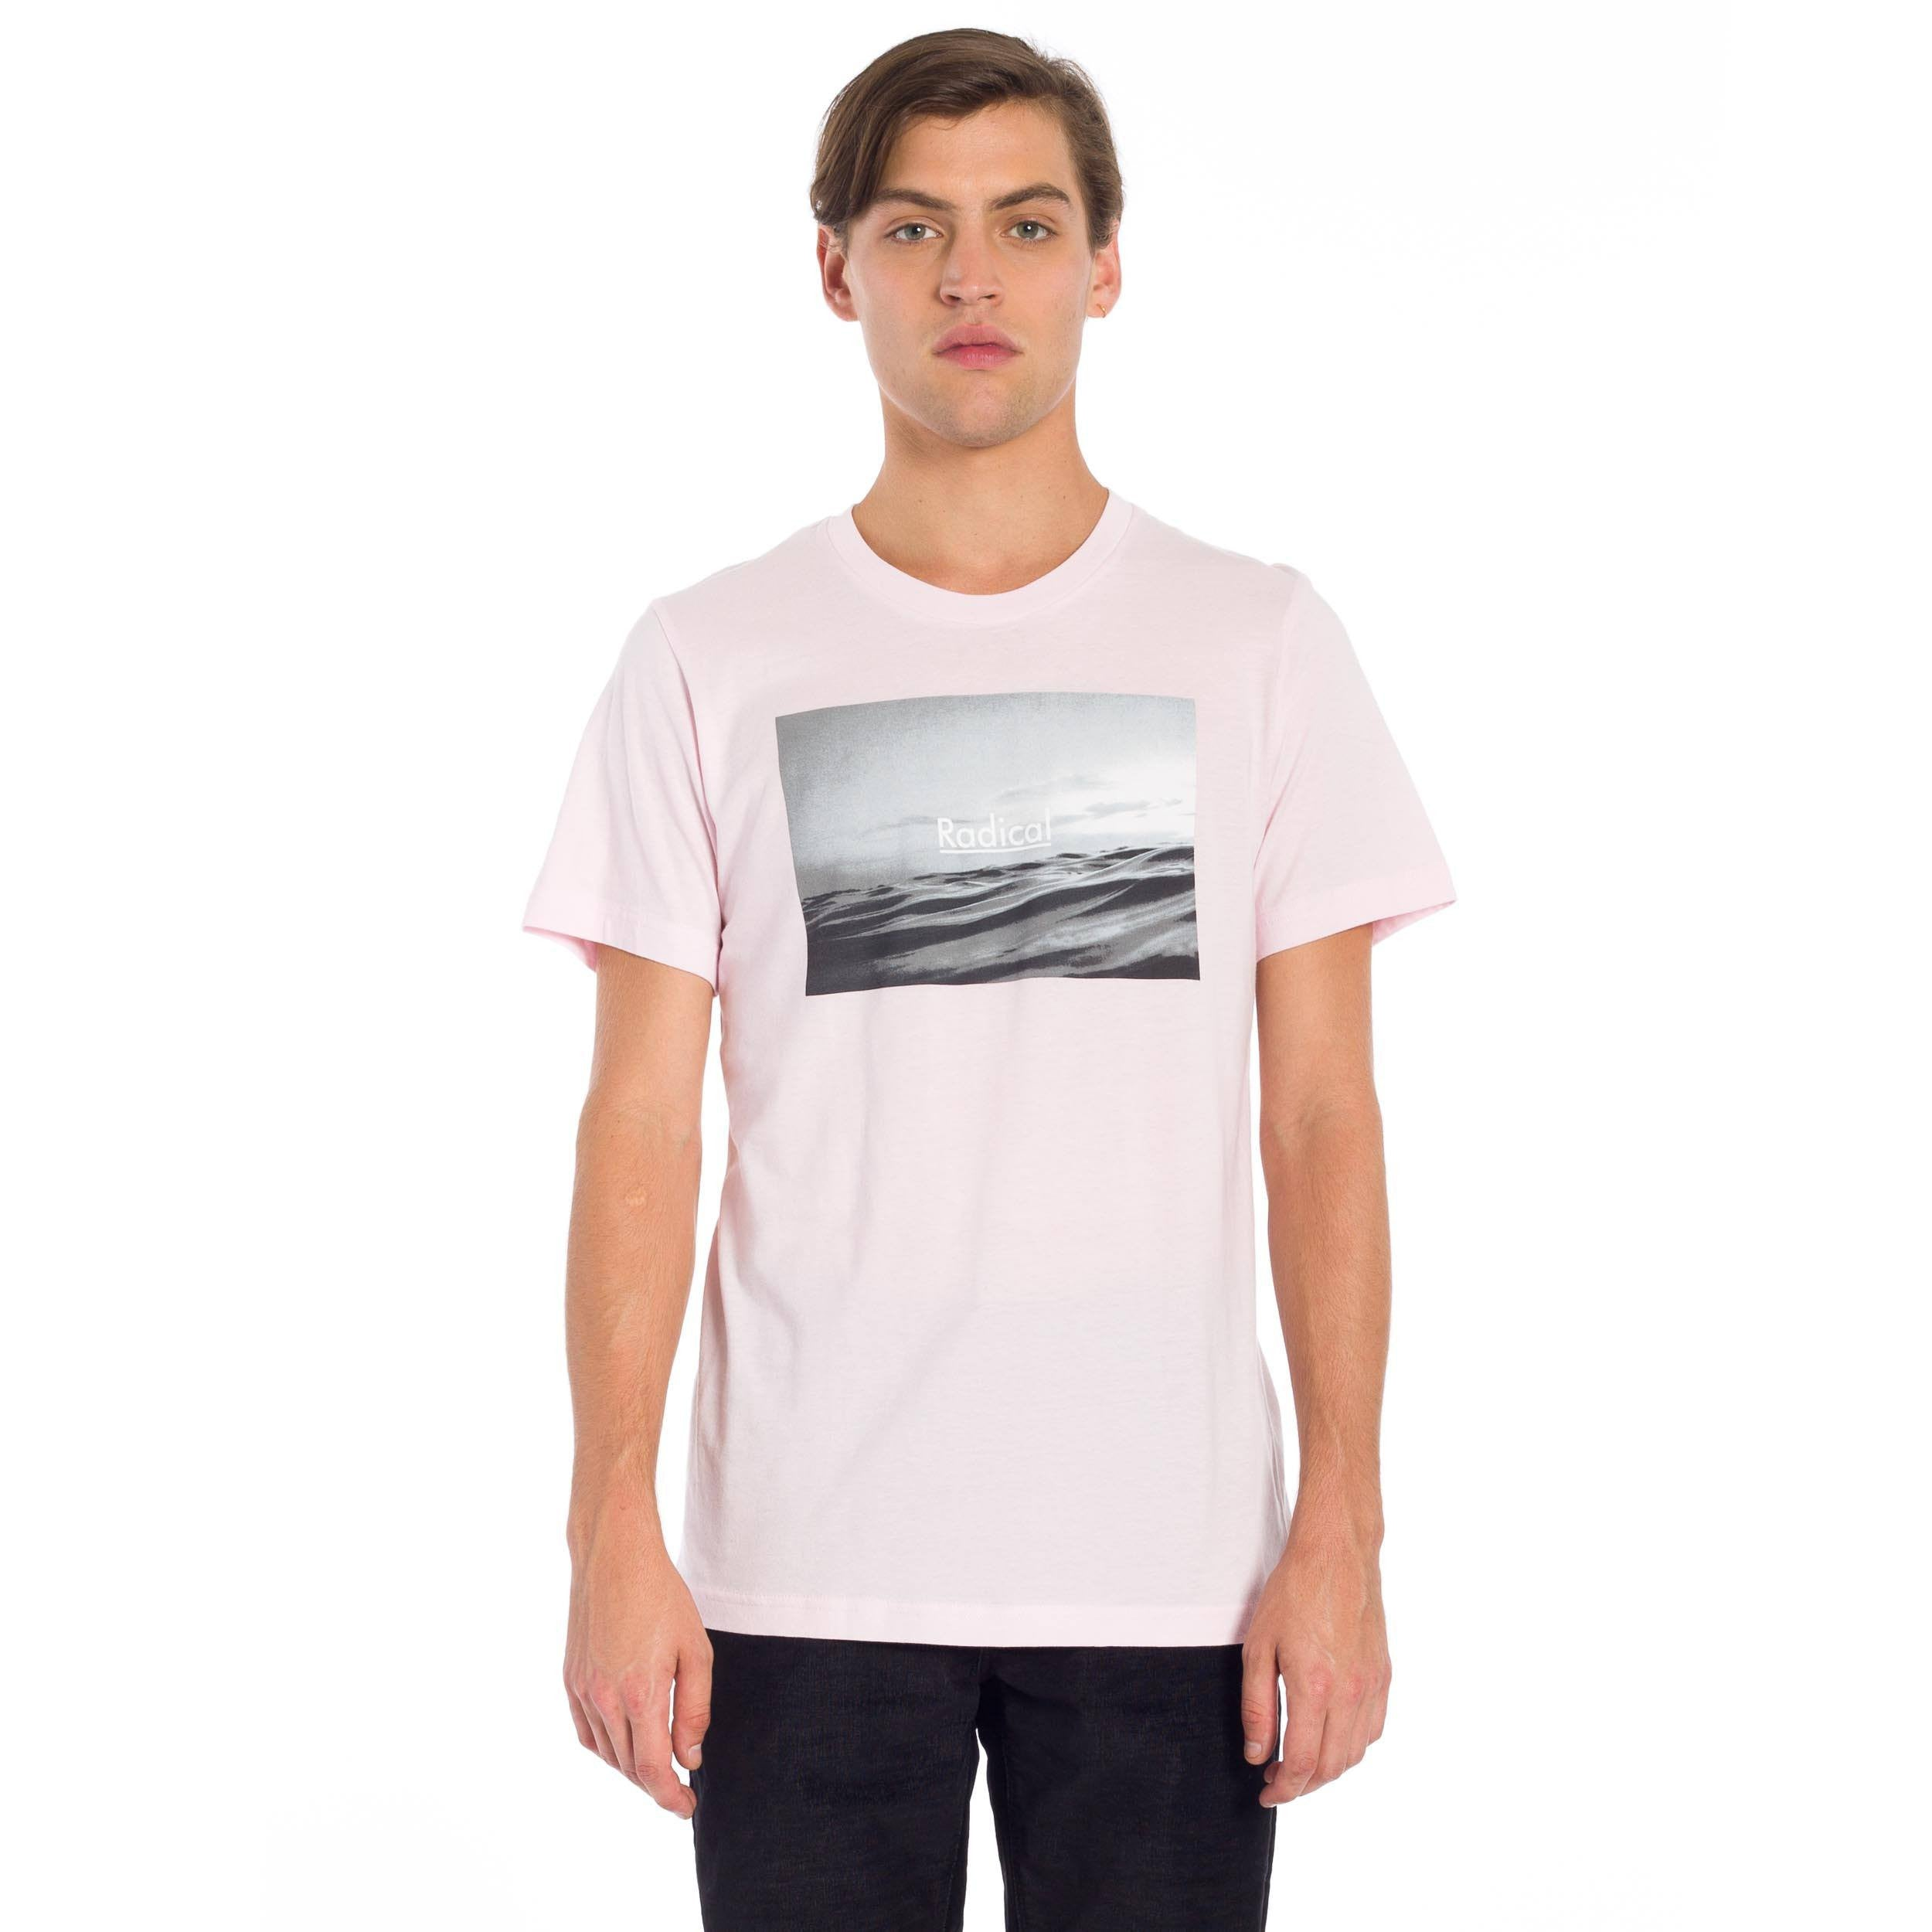 Radical T-Shirt - Light Pink